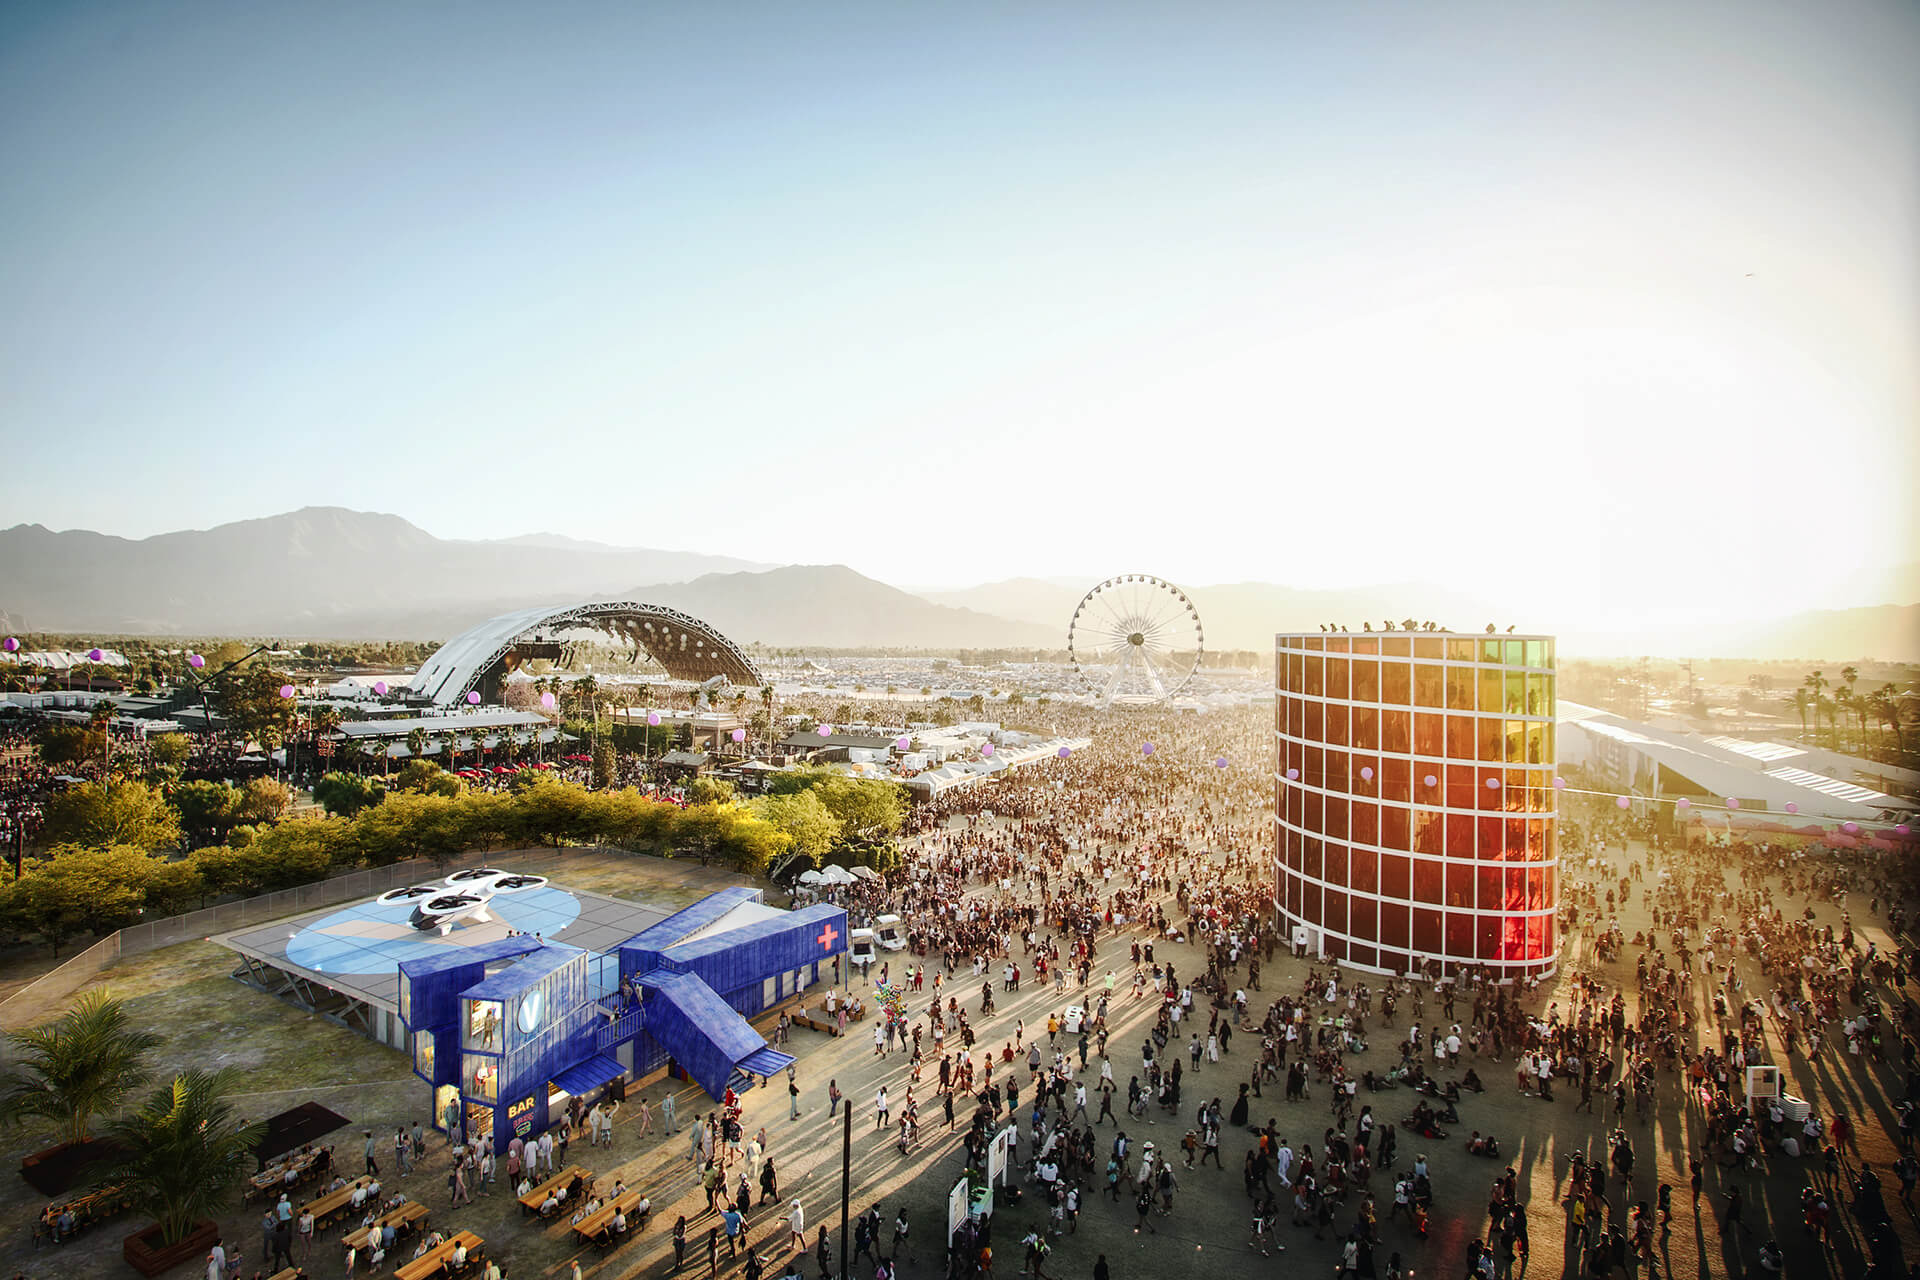 Facilitating access to temporary events, Coachella Festival | Airbus | MVRDV | STIRworld